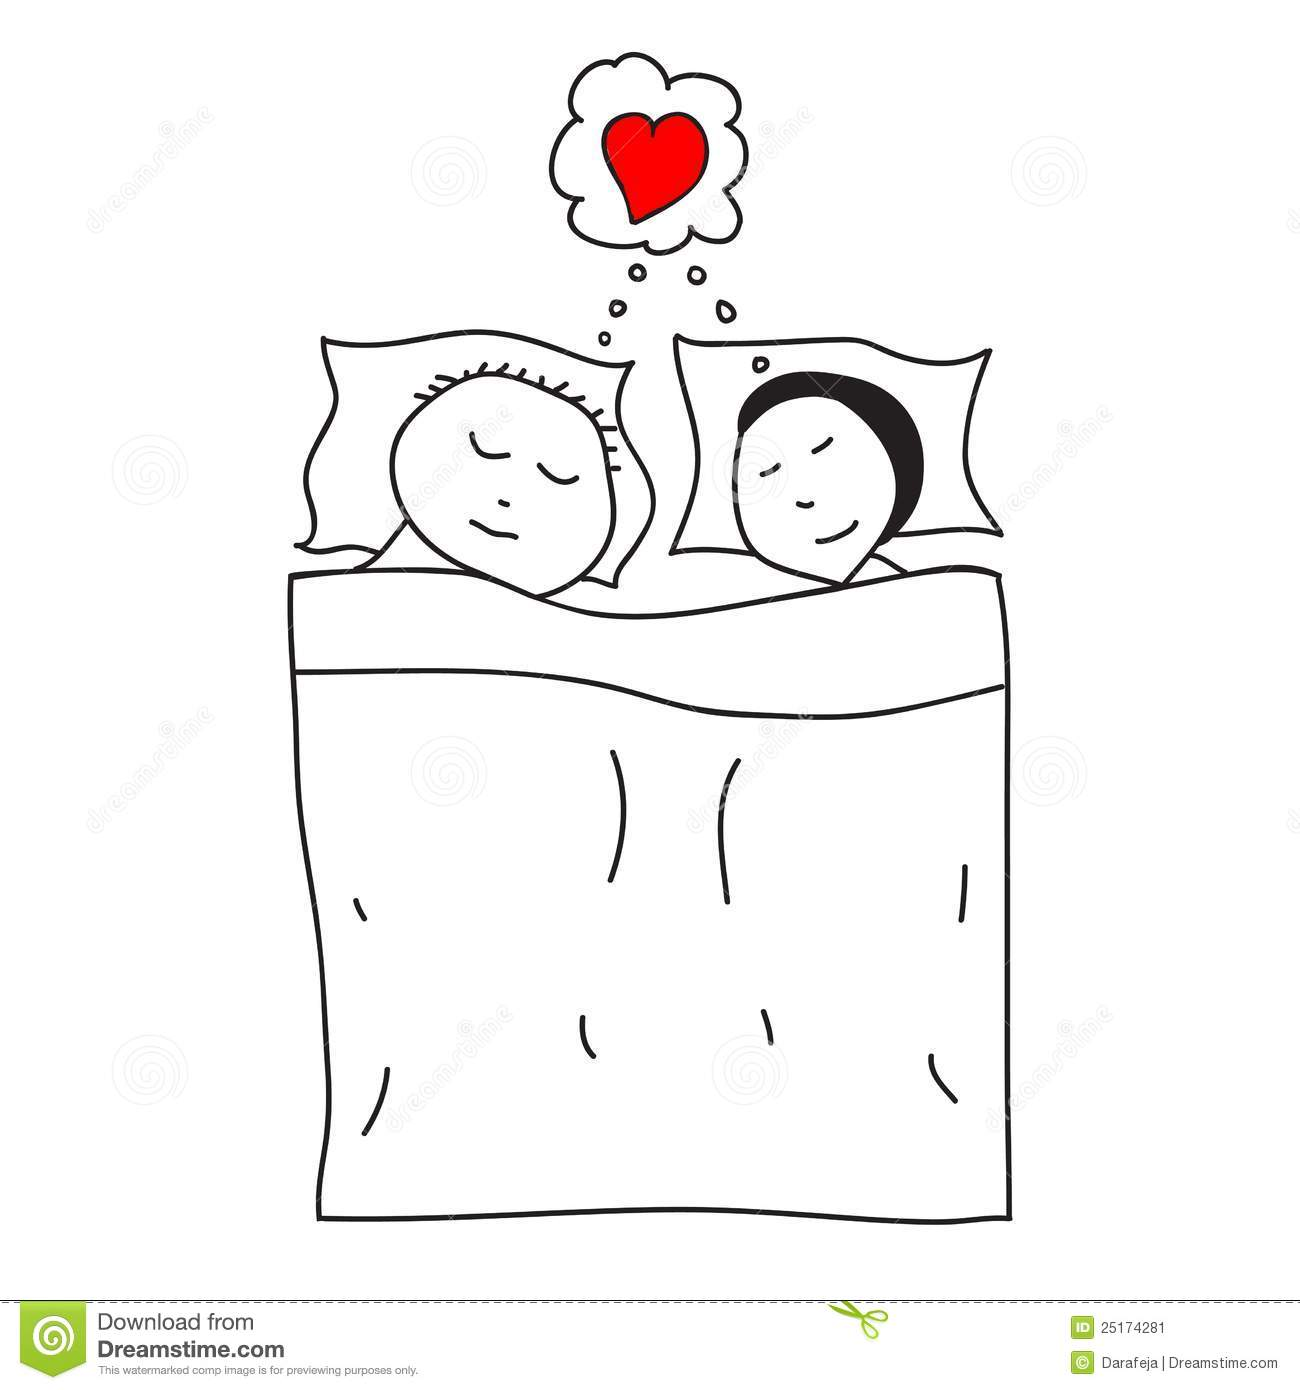 Sleeping Couple In The Bed Stock Image - Image: 25174281